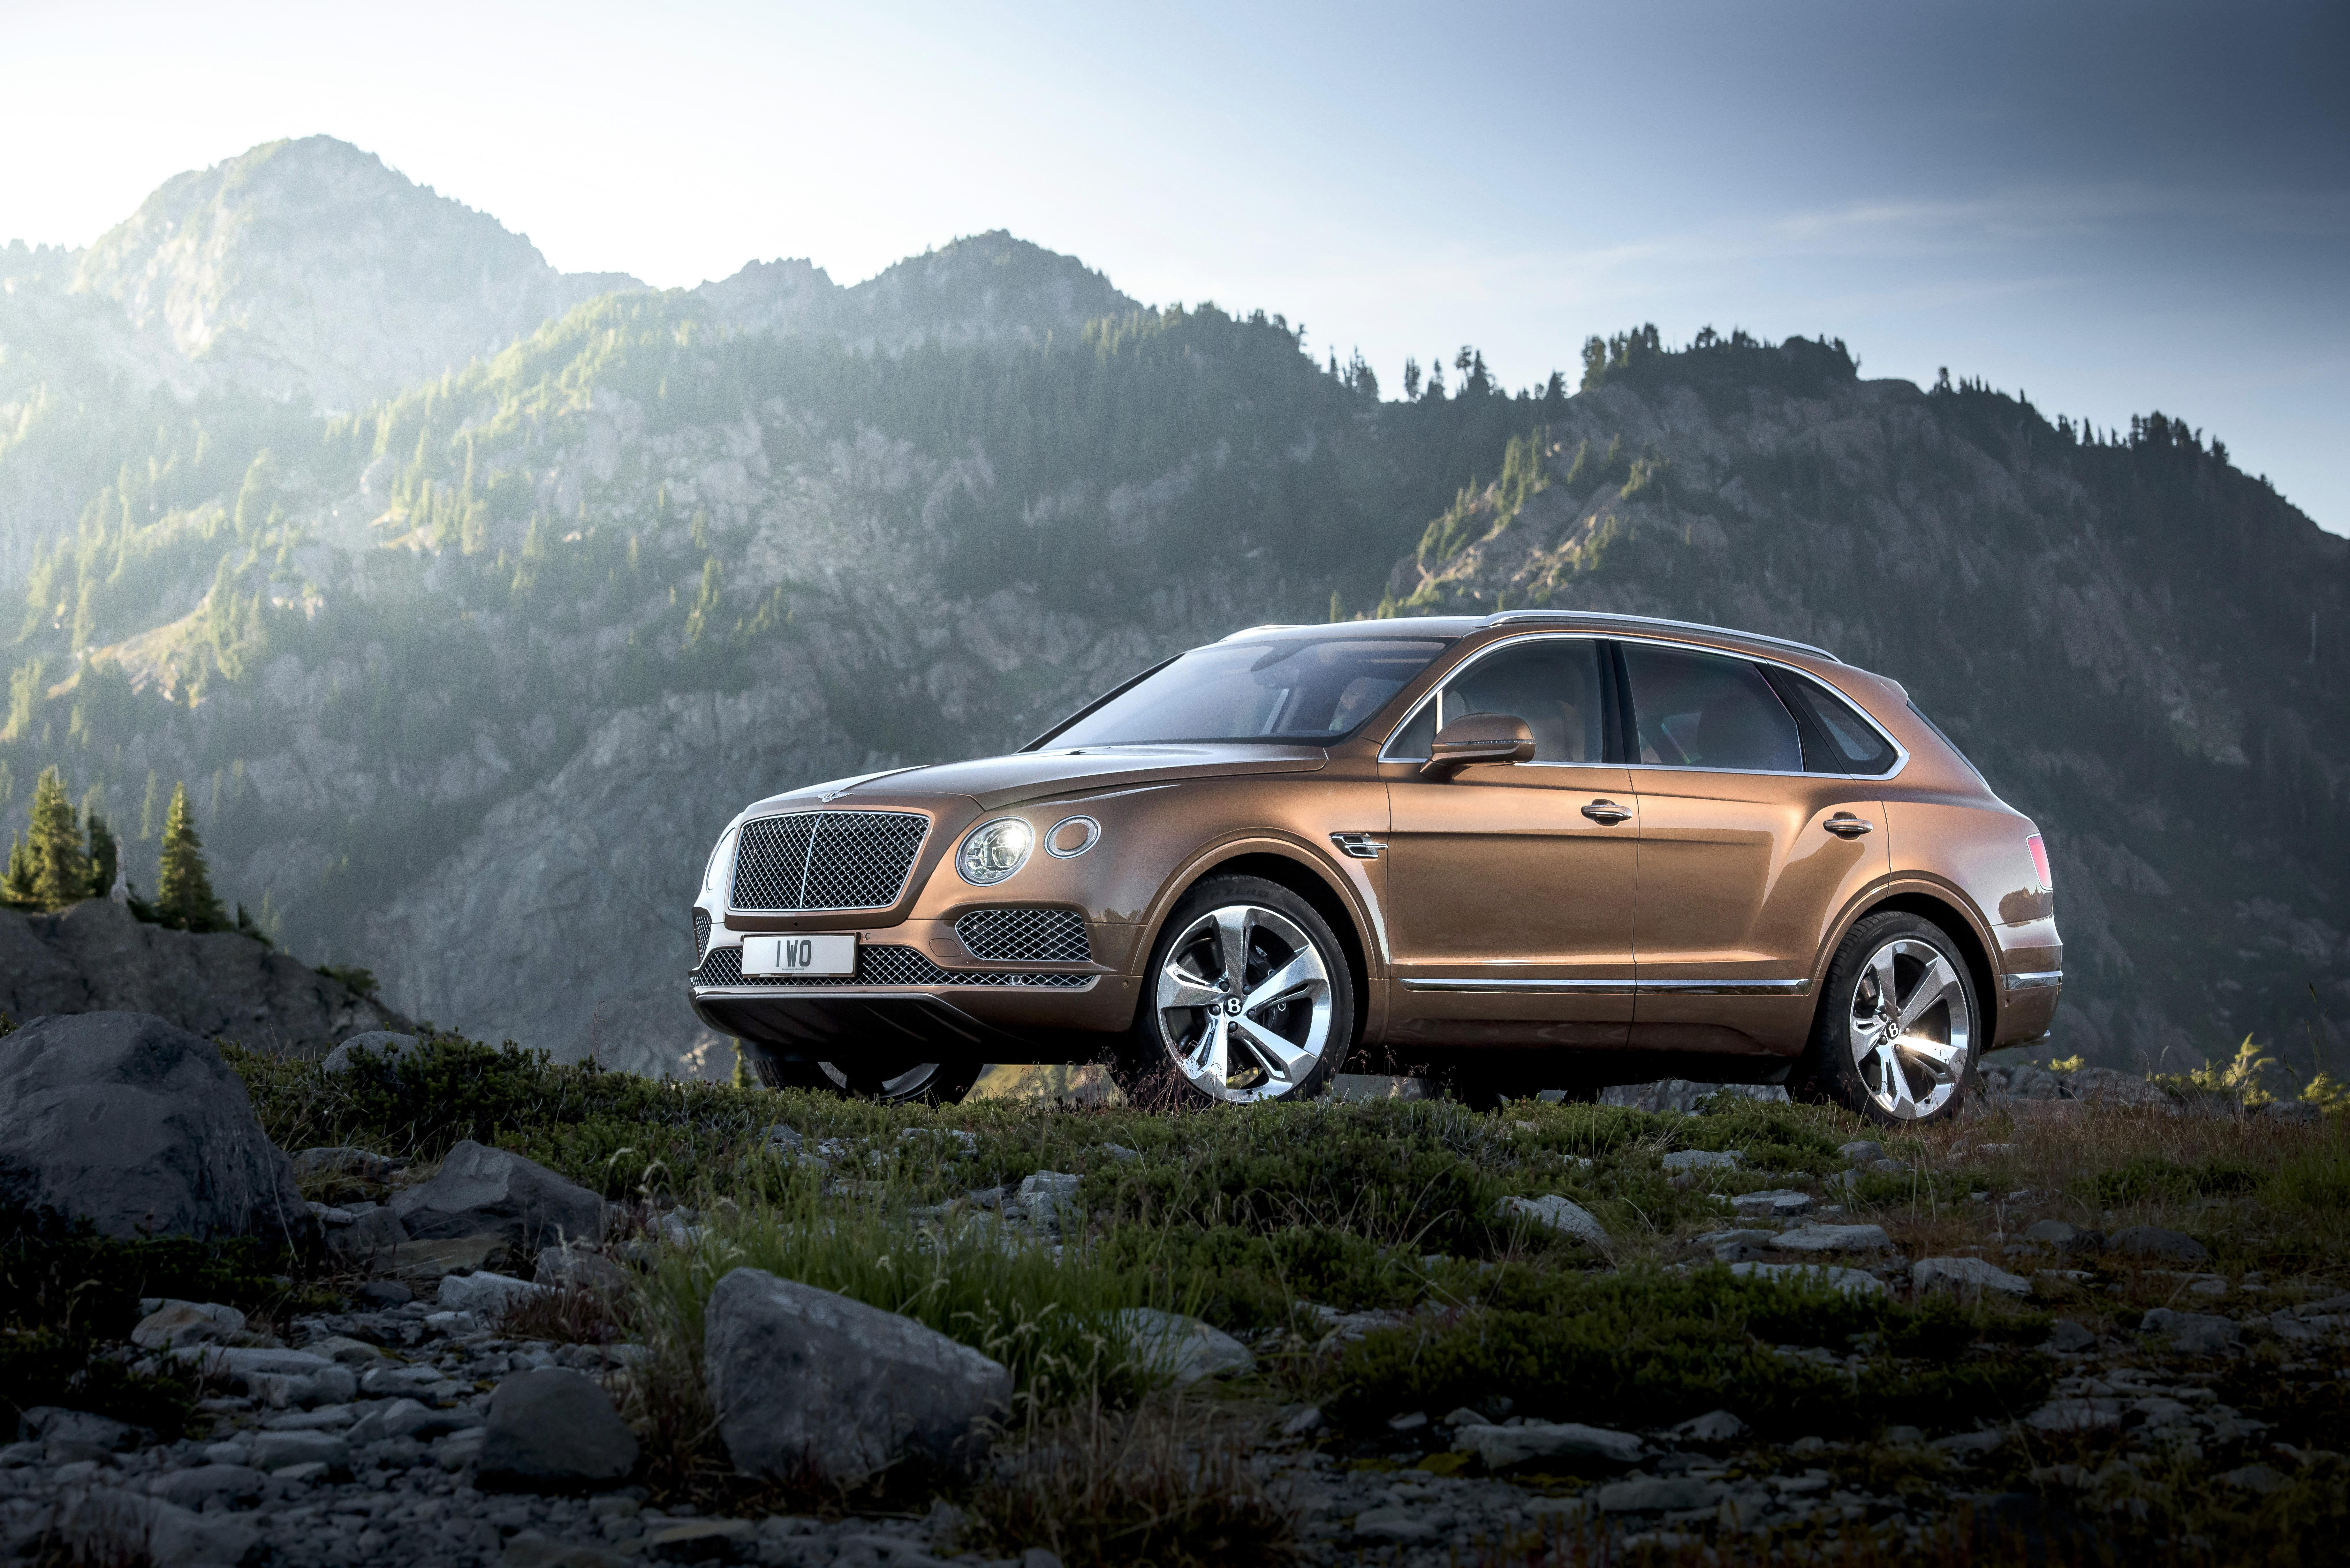 This is the Bentley Bentayga, the fastest SUV on the planet - The Verge